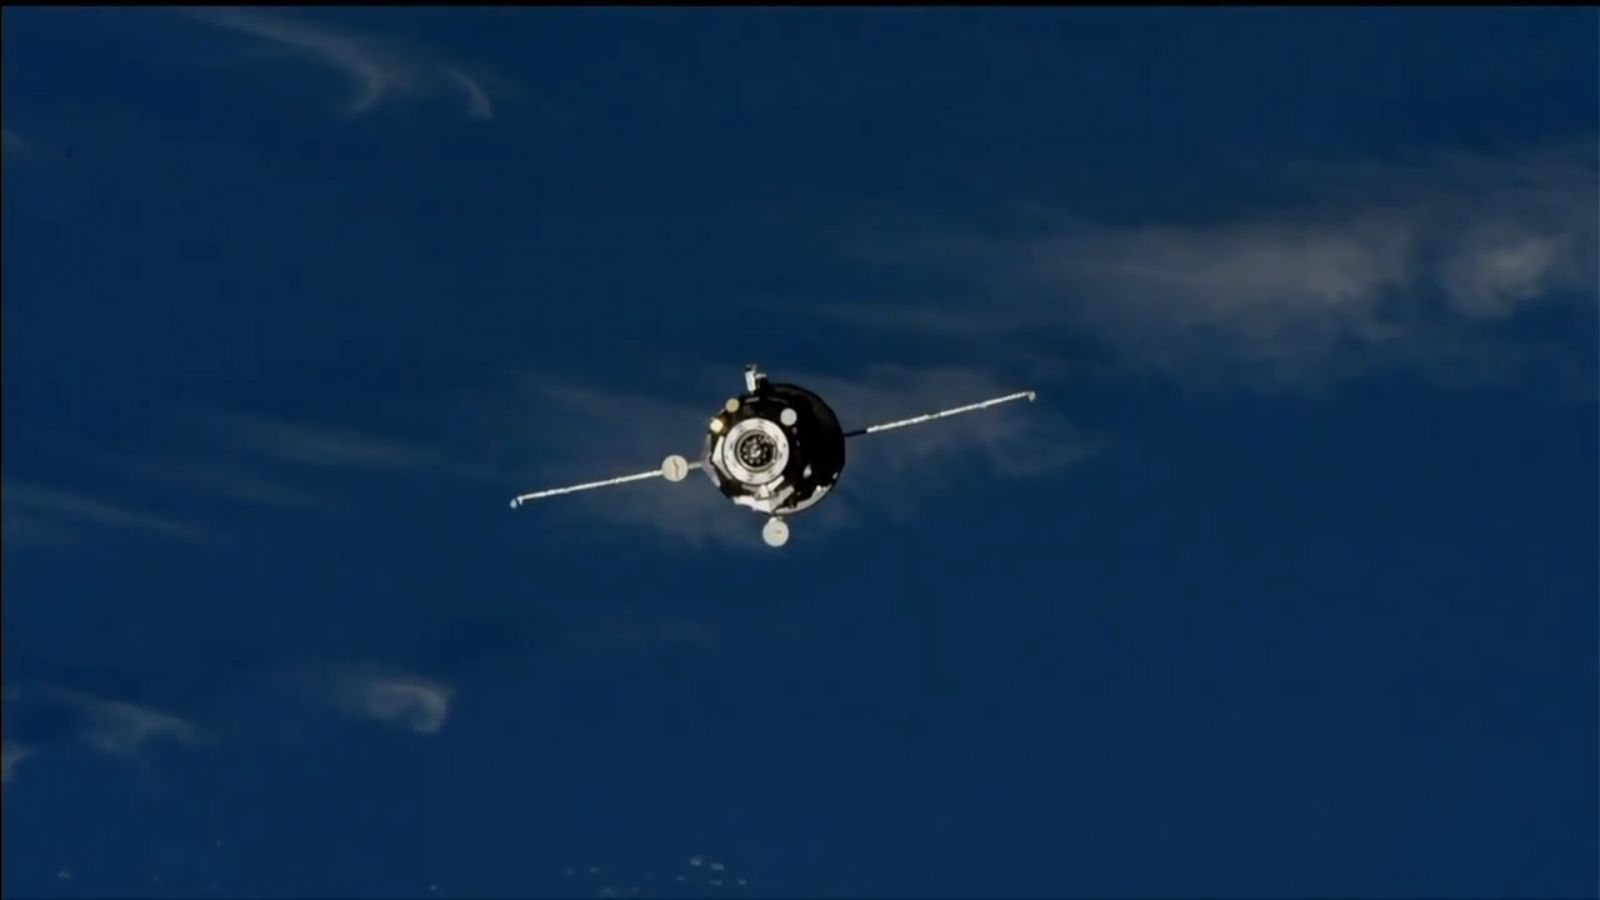 Cargo ship launch clears crewed mission to space station